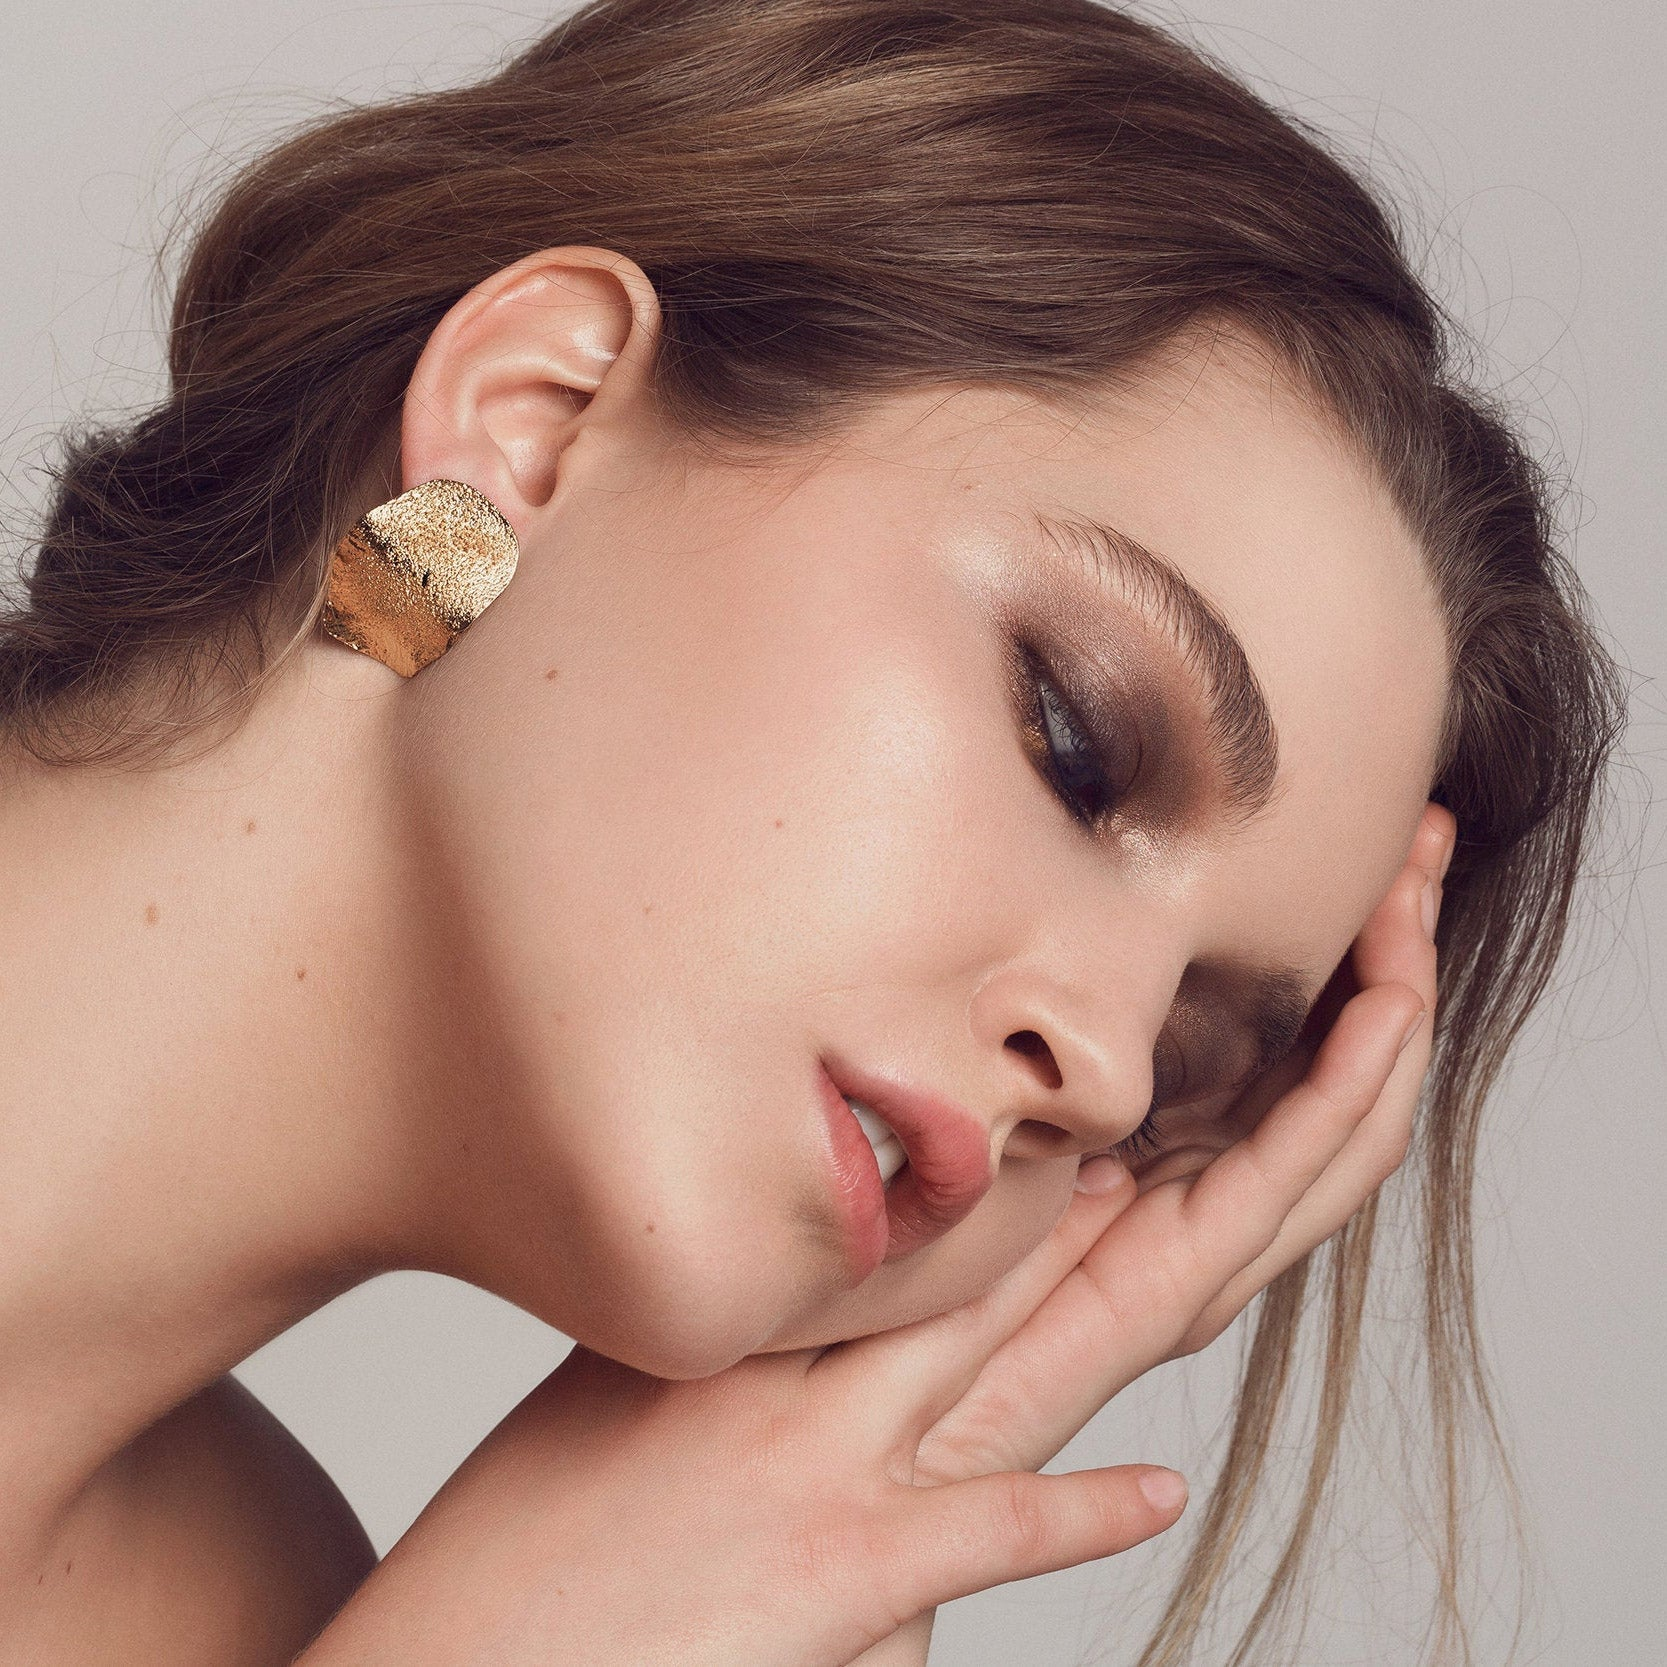 Olas - Model Wearing an Handmade Golden Earrings in Silver & Gold - Sold by Chic & Basta